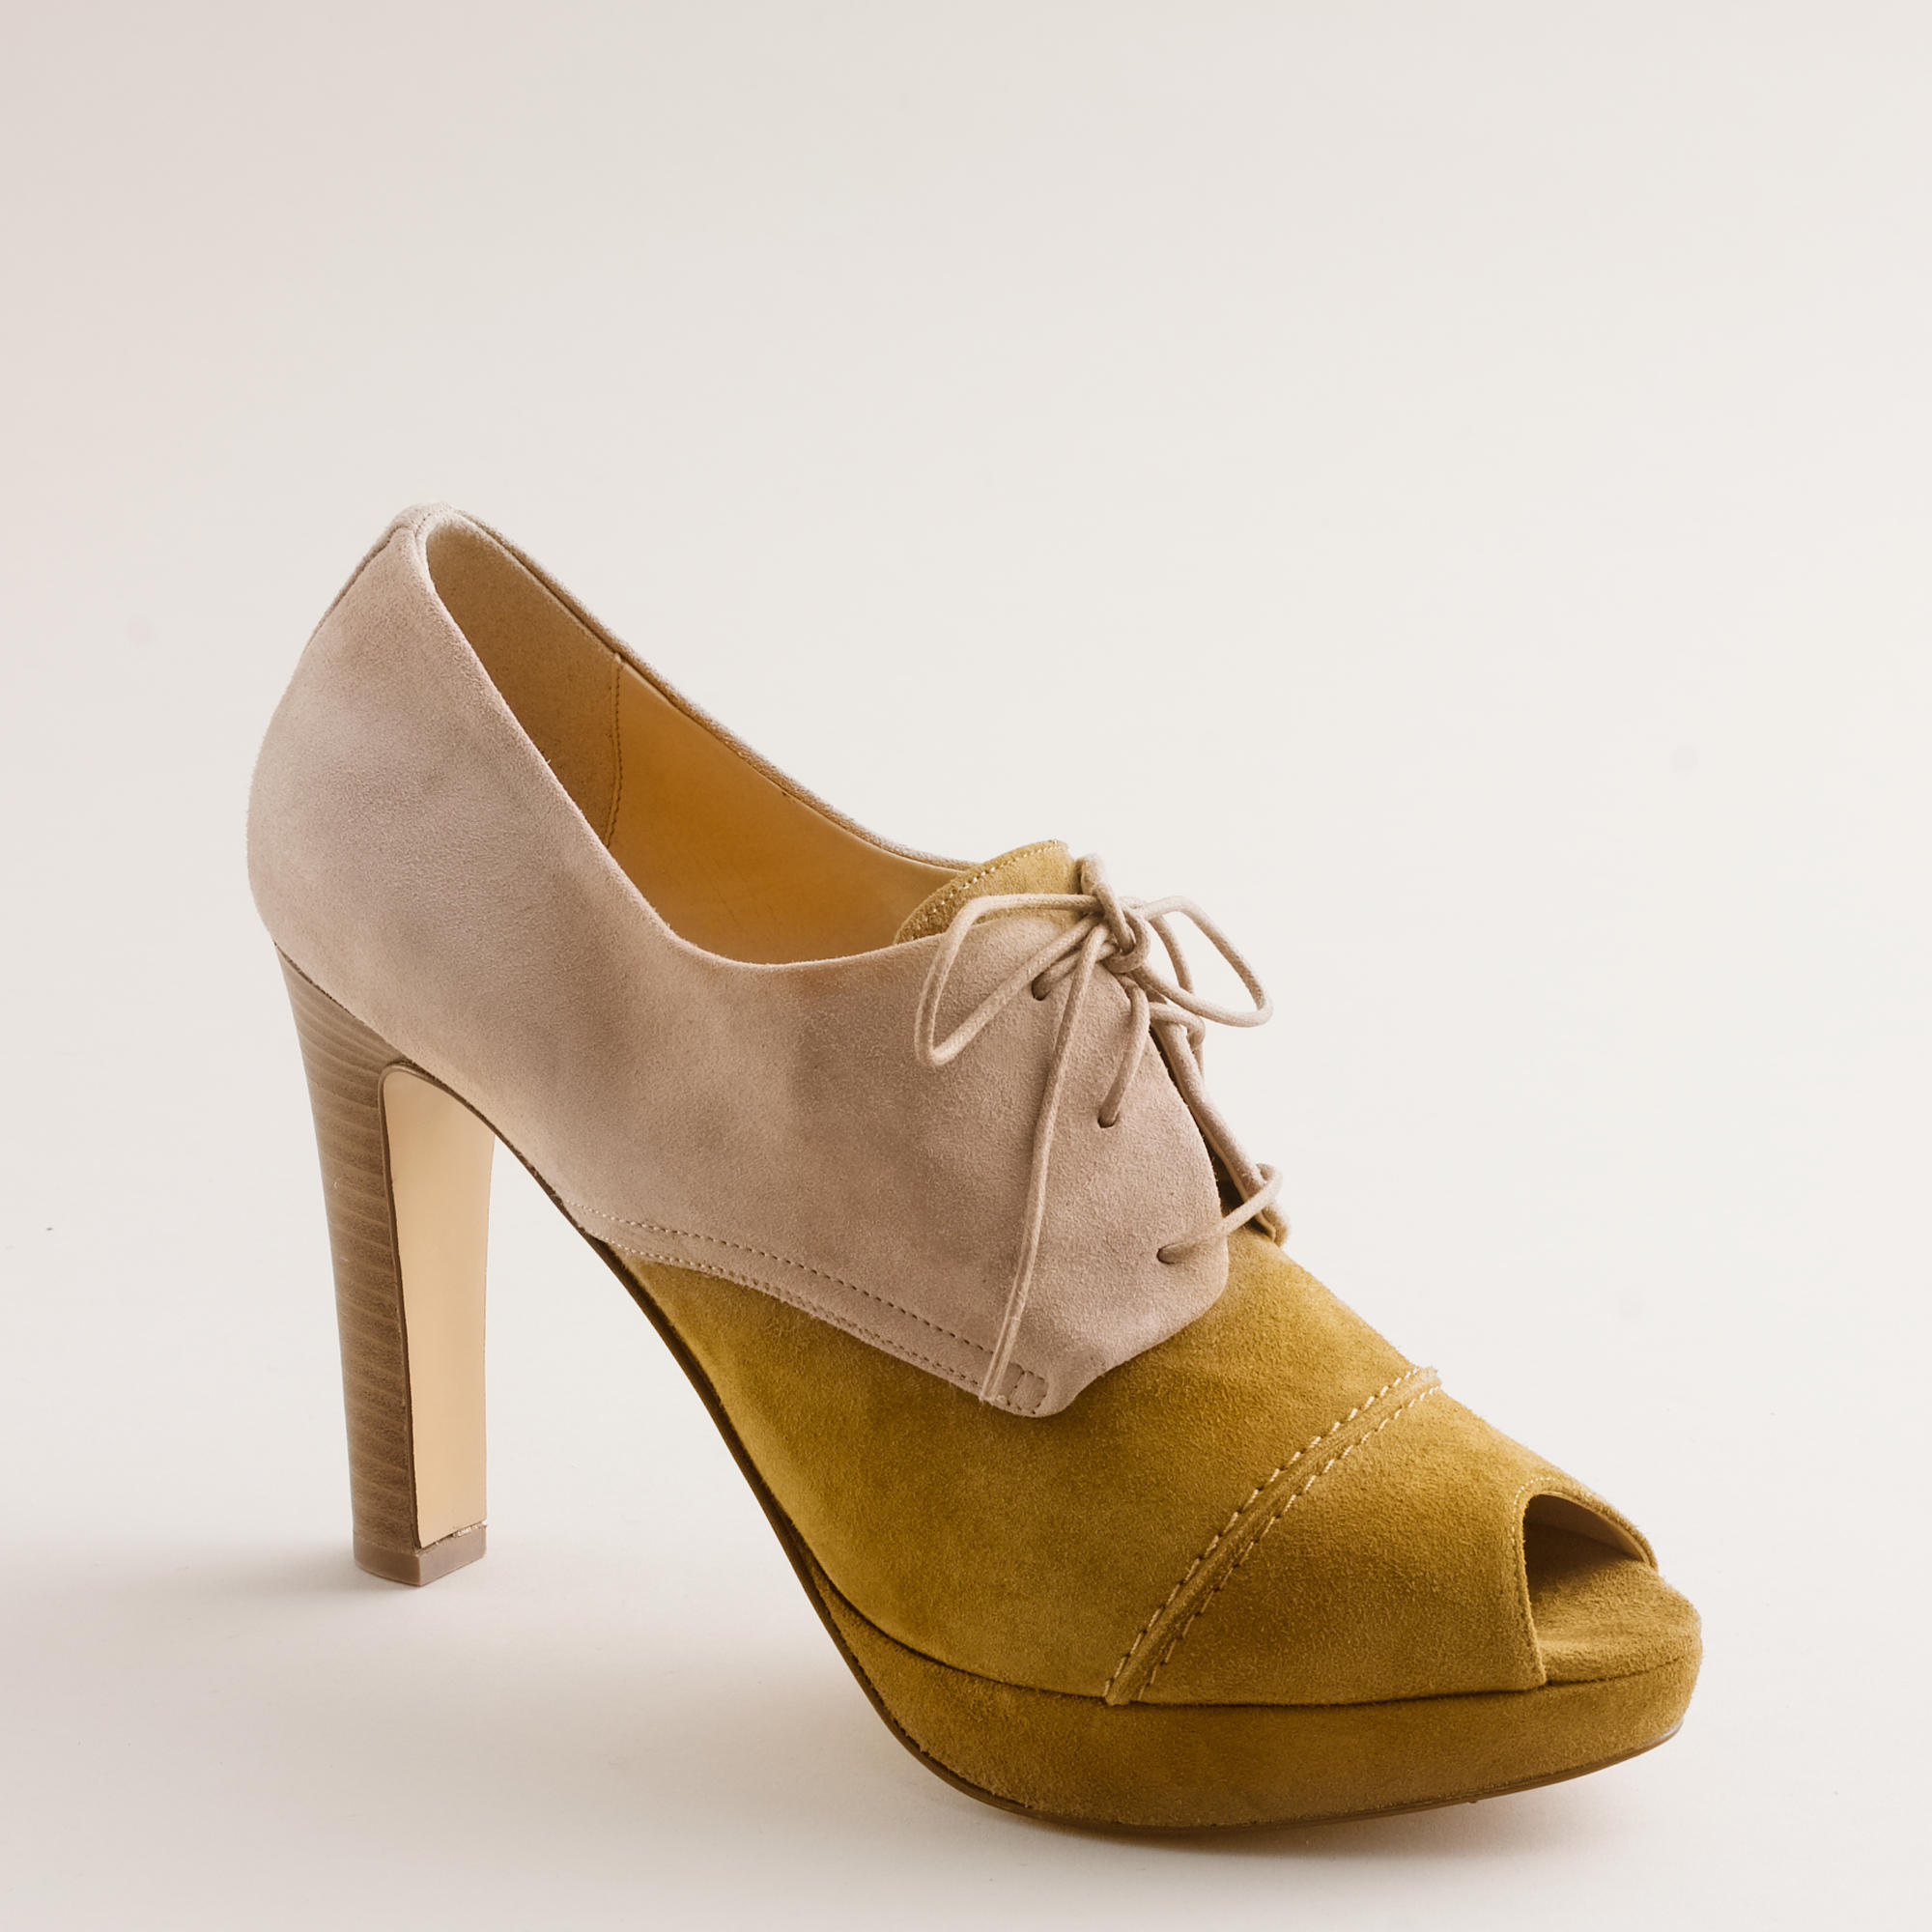 Oxford Shoes With A Heel